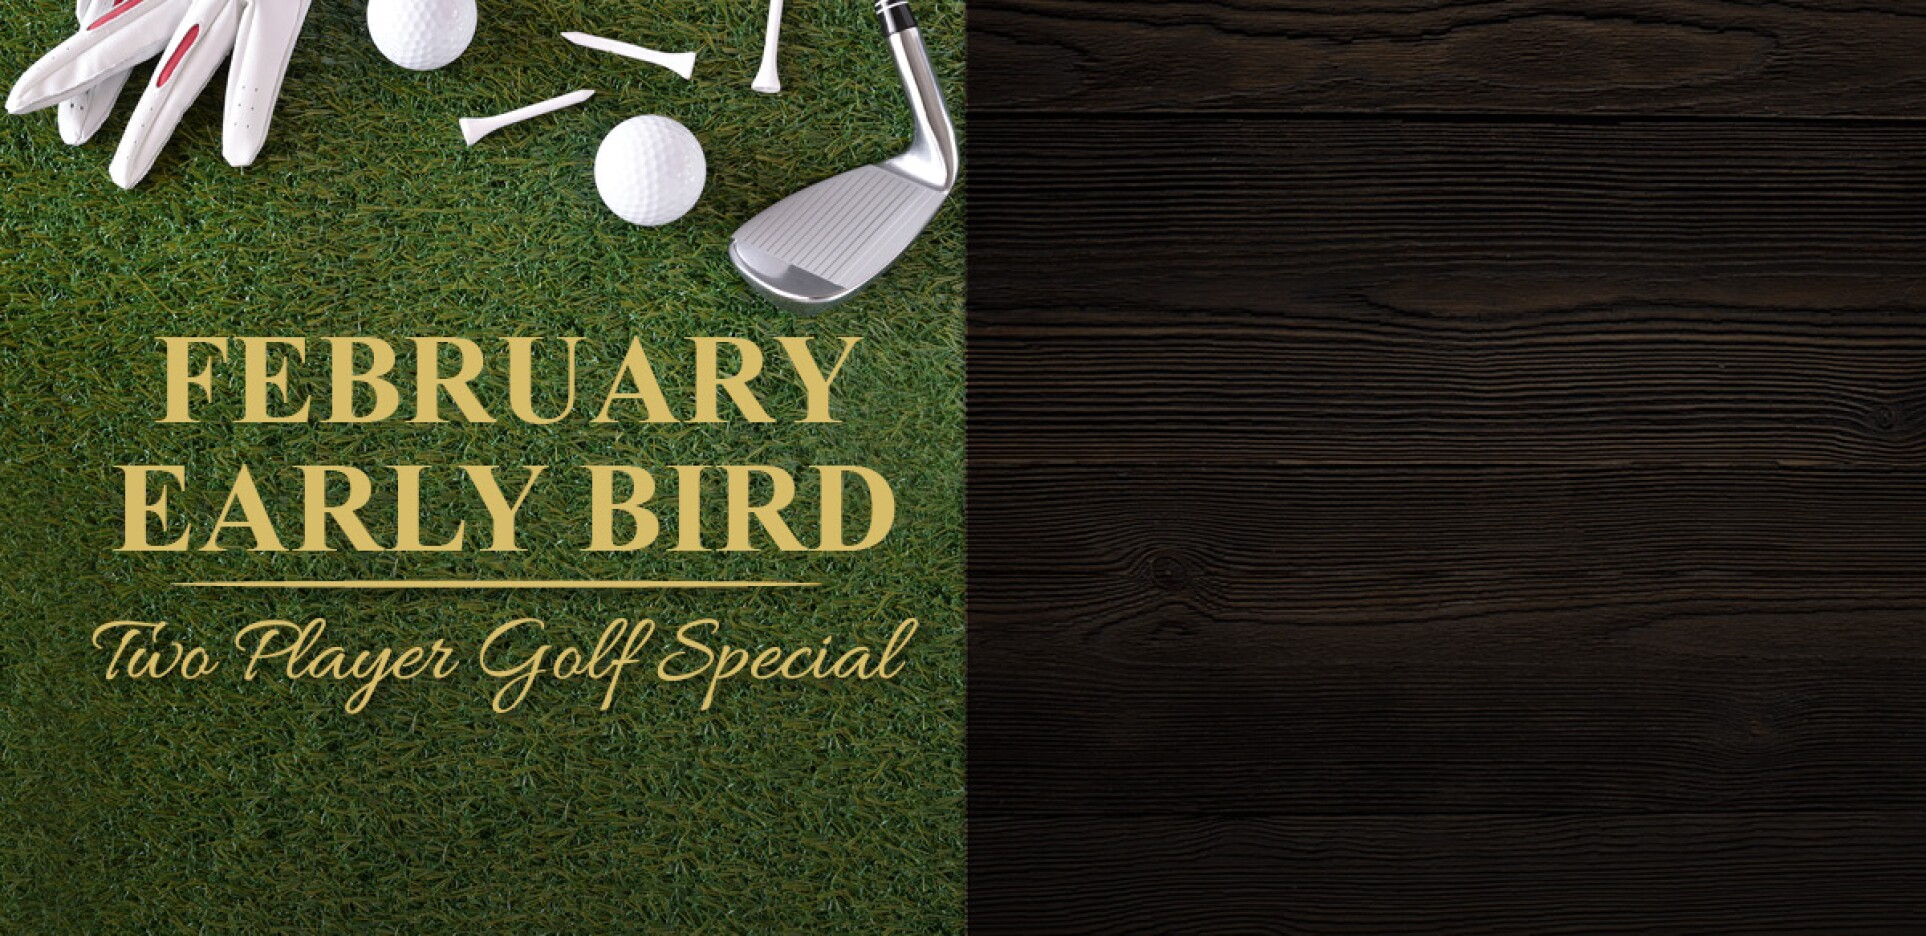 February Early Bird Two Player Special WMH